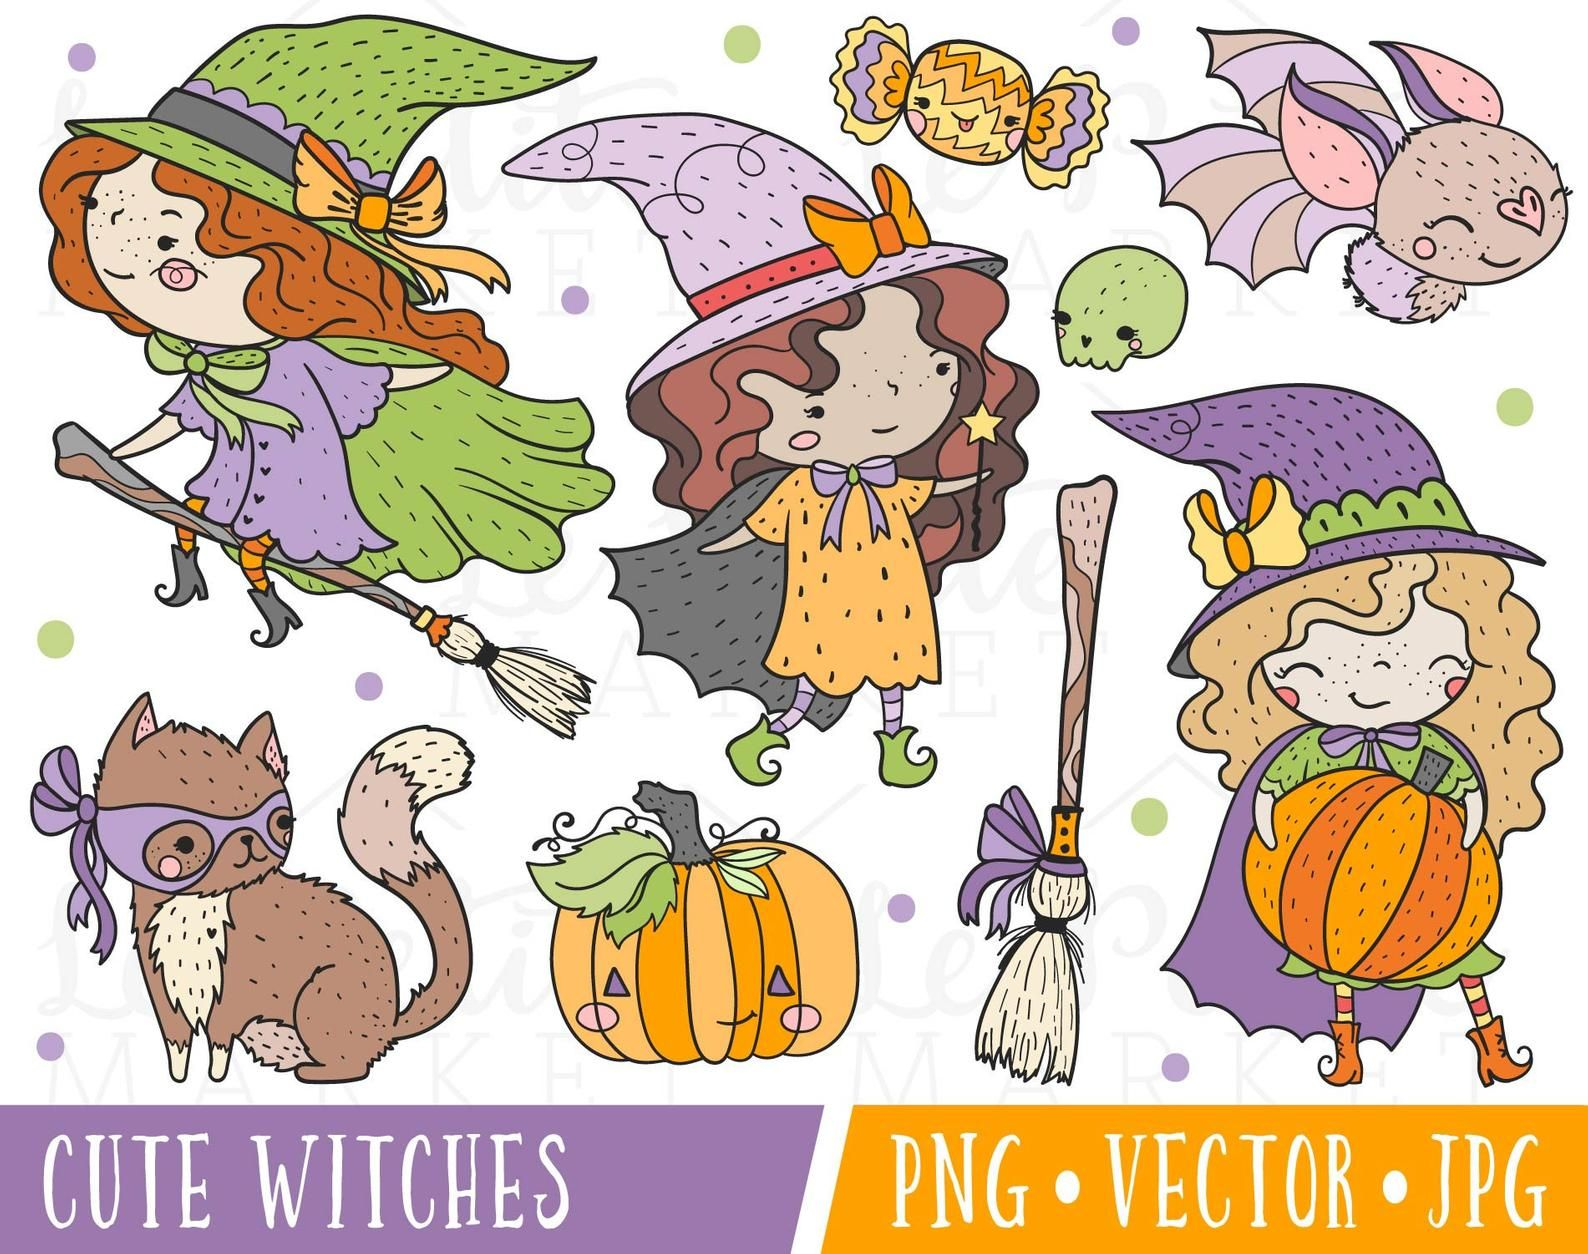 Cute Witch Clipart Images Cute Witch Clip Art Doodle Halloween Clipart Halloween Illustrations Cute Halloween Witches Clip Art Png Witch Clipart Halloween Illustration Clip Art